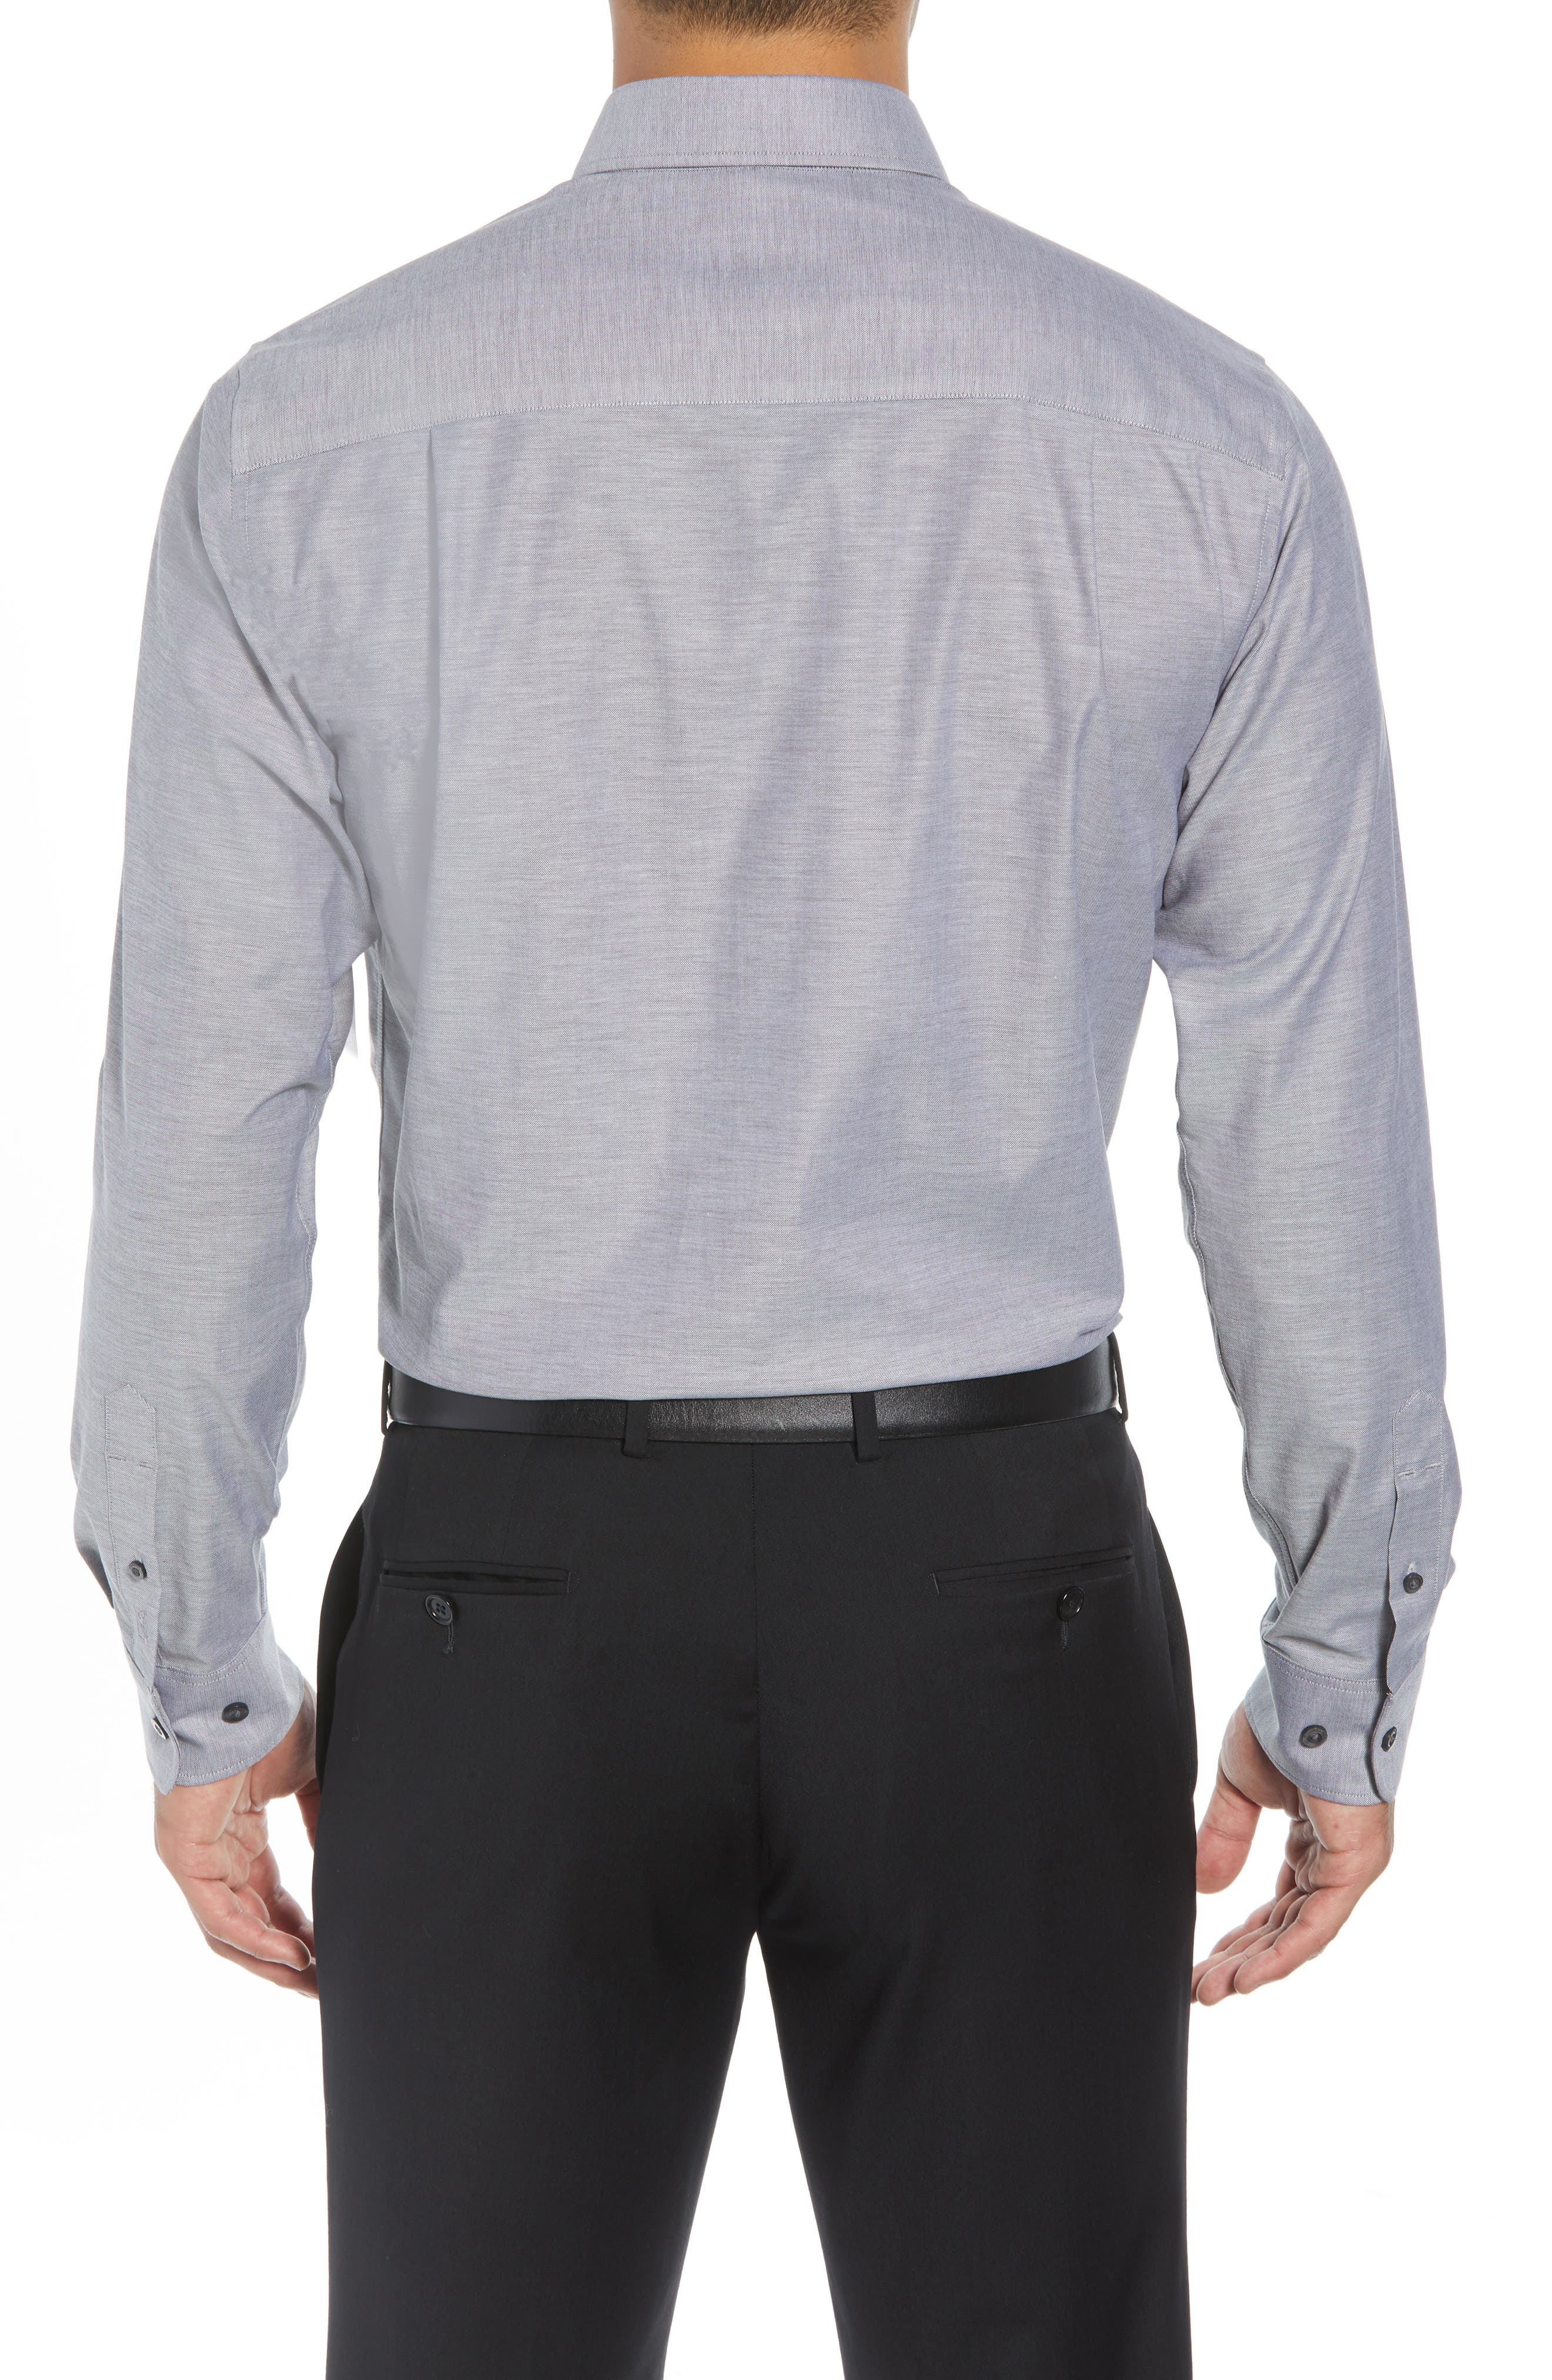 Tailor Regular Fit Oxford Sport Shirt,                             Alternate thumbnail 3, color,                             CHARCOAL 2